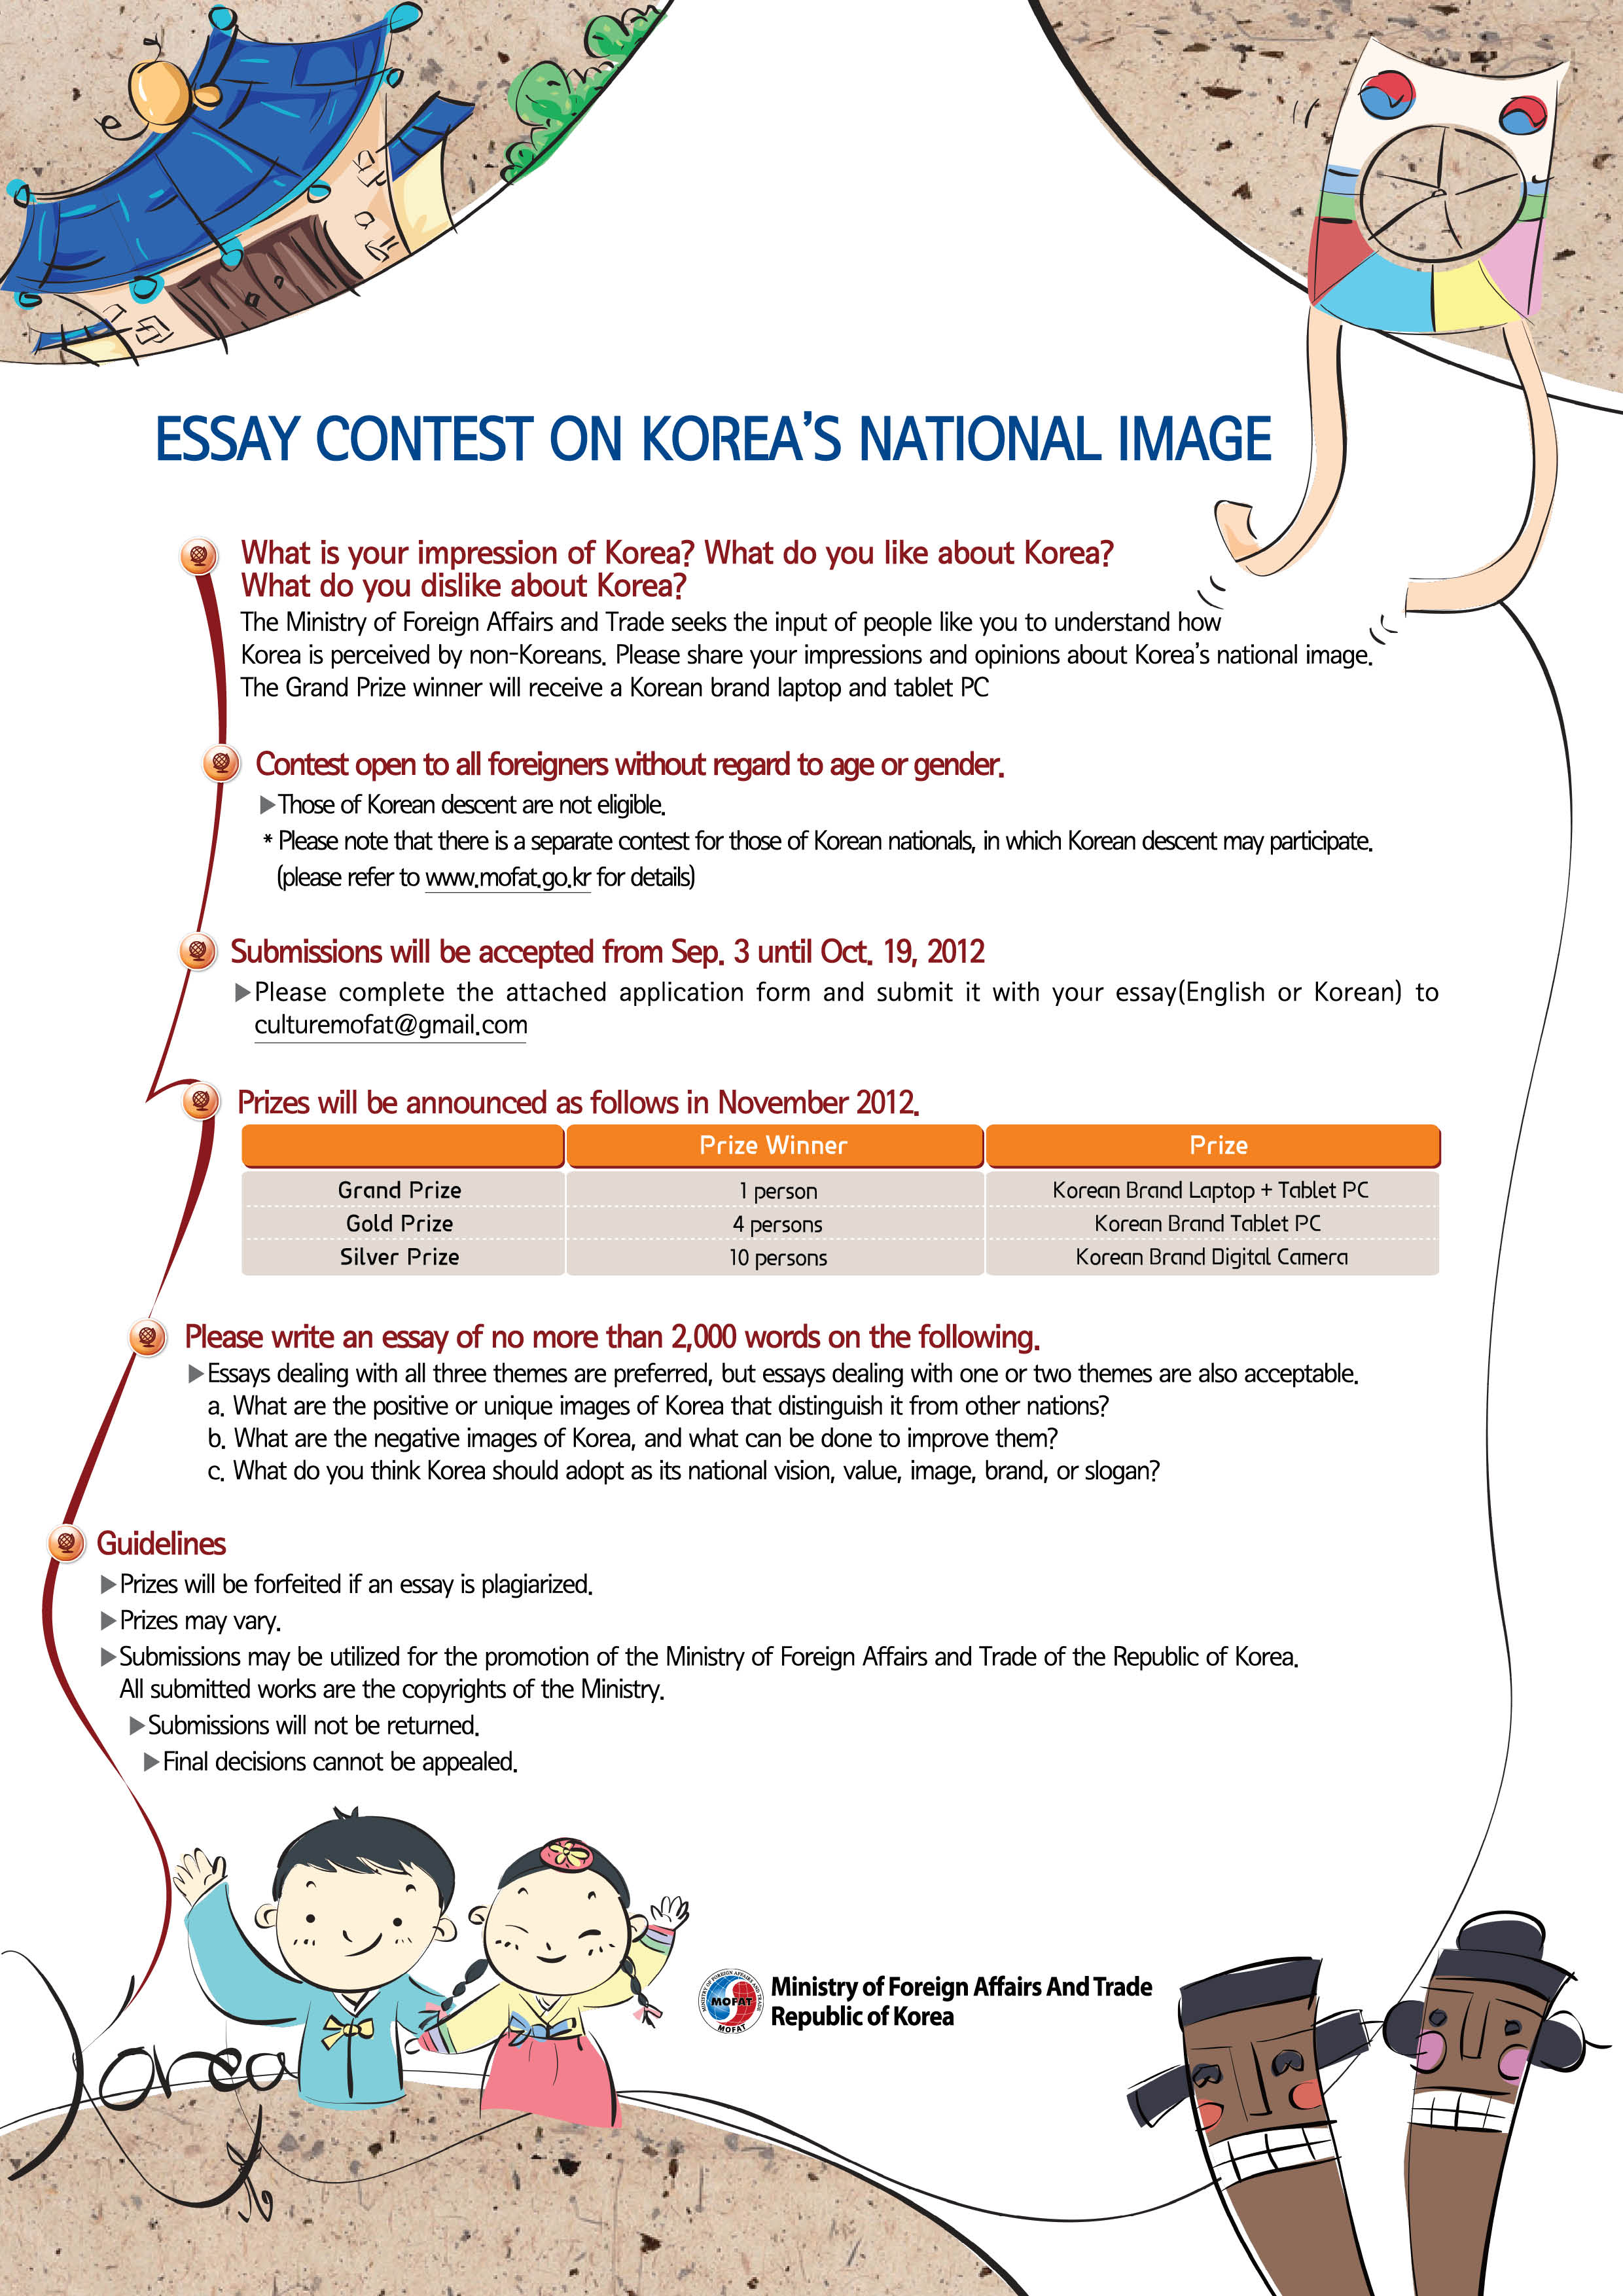 korea essay essay on korea s national image ldquo what is modern  essay on korea s national image ldquo what is modern korea rdquo if i 20120831181019639 0o5qw146